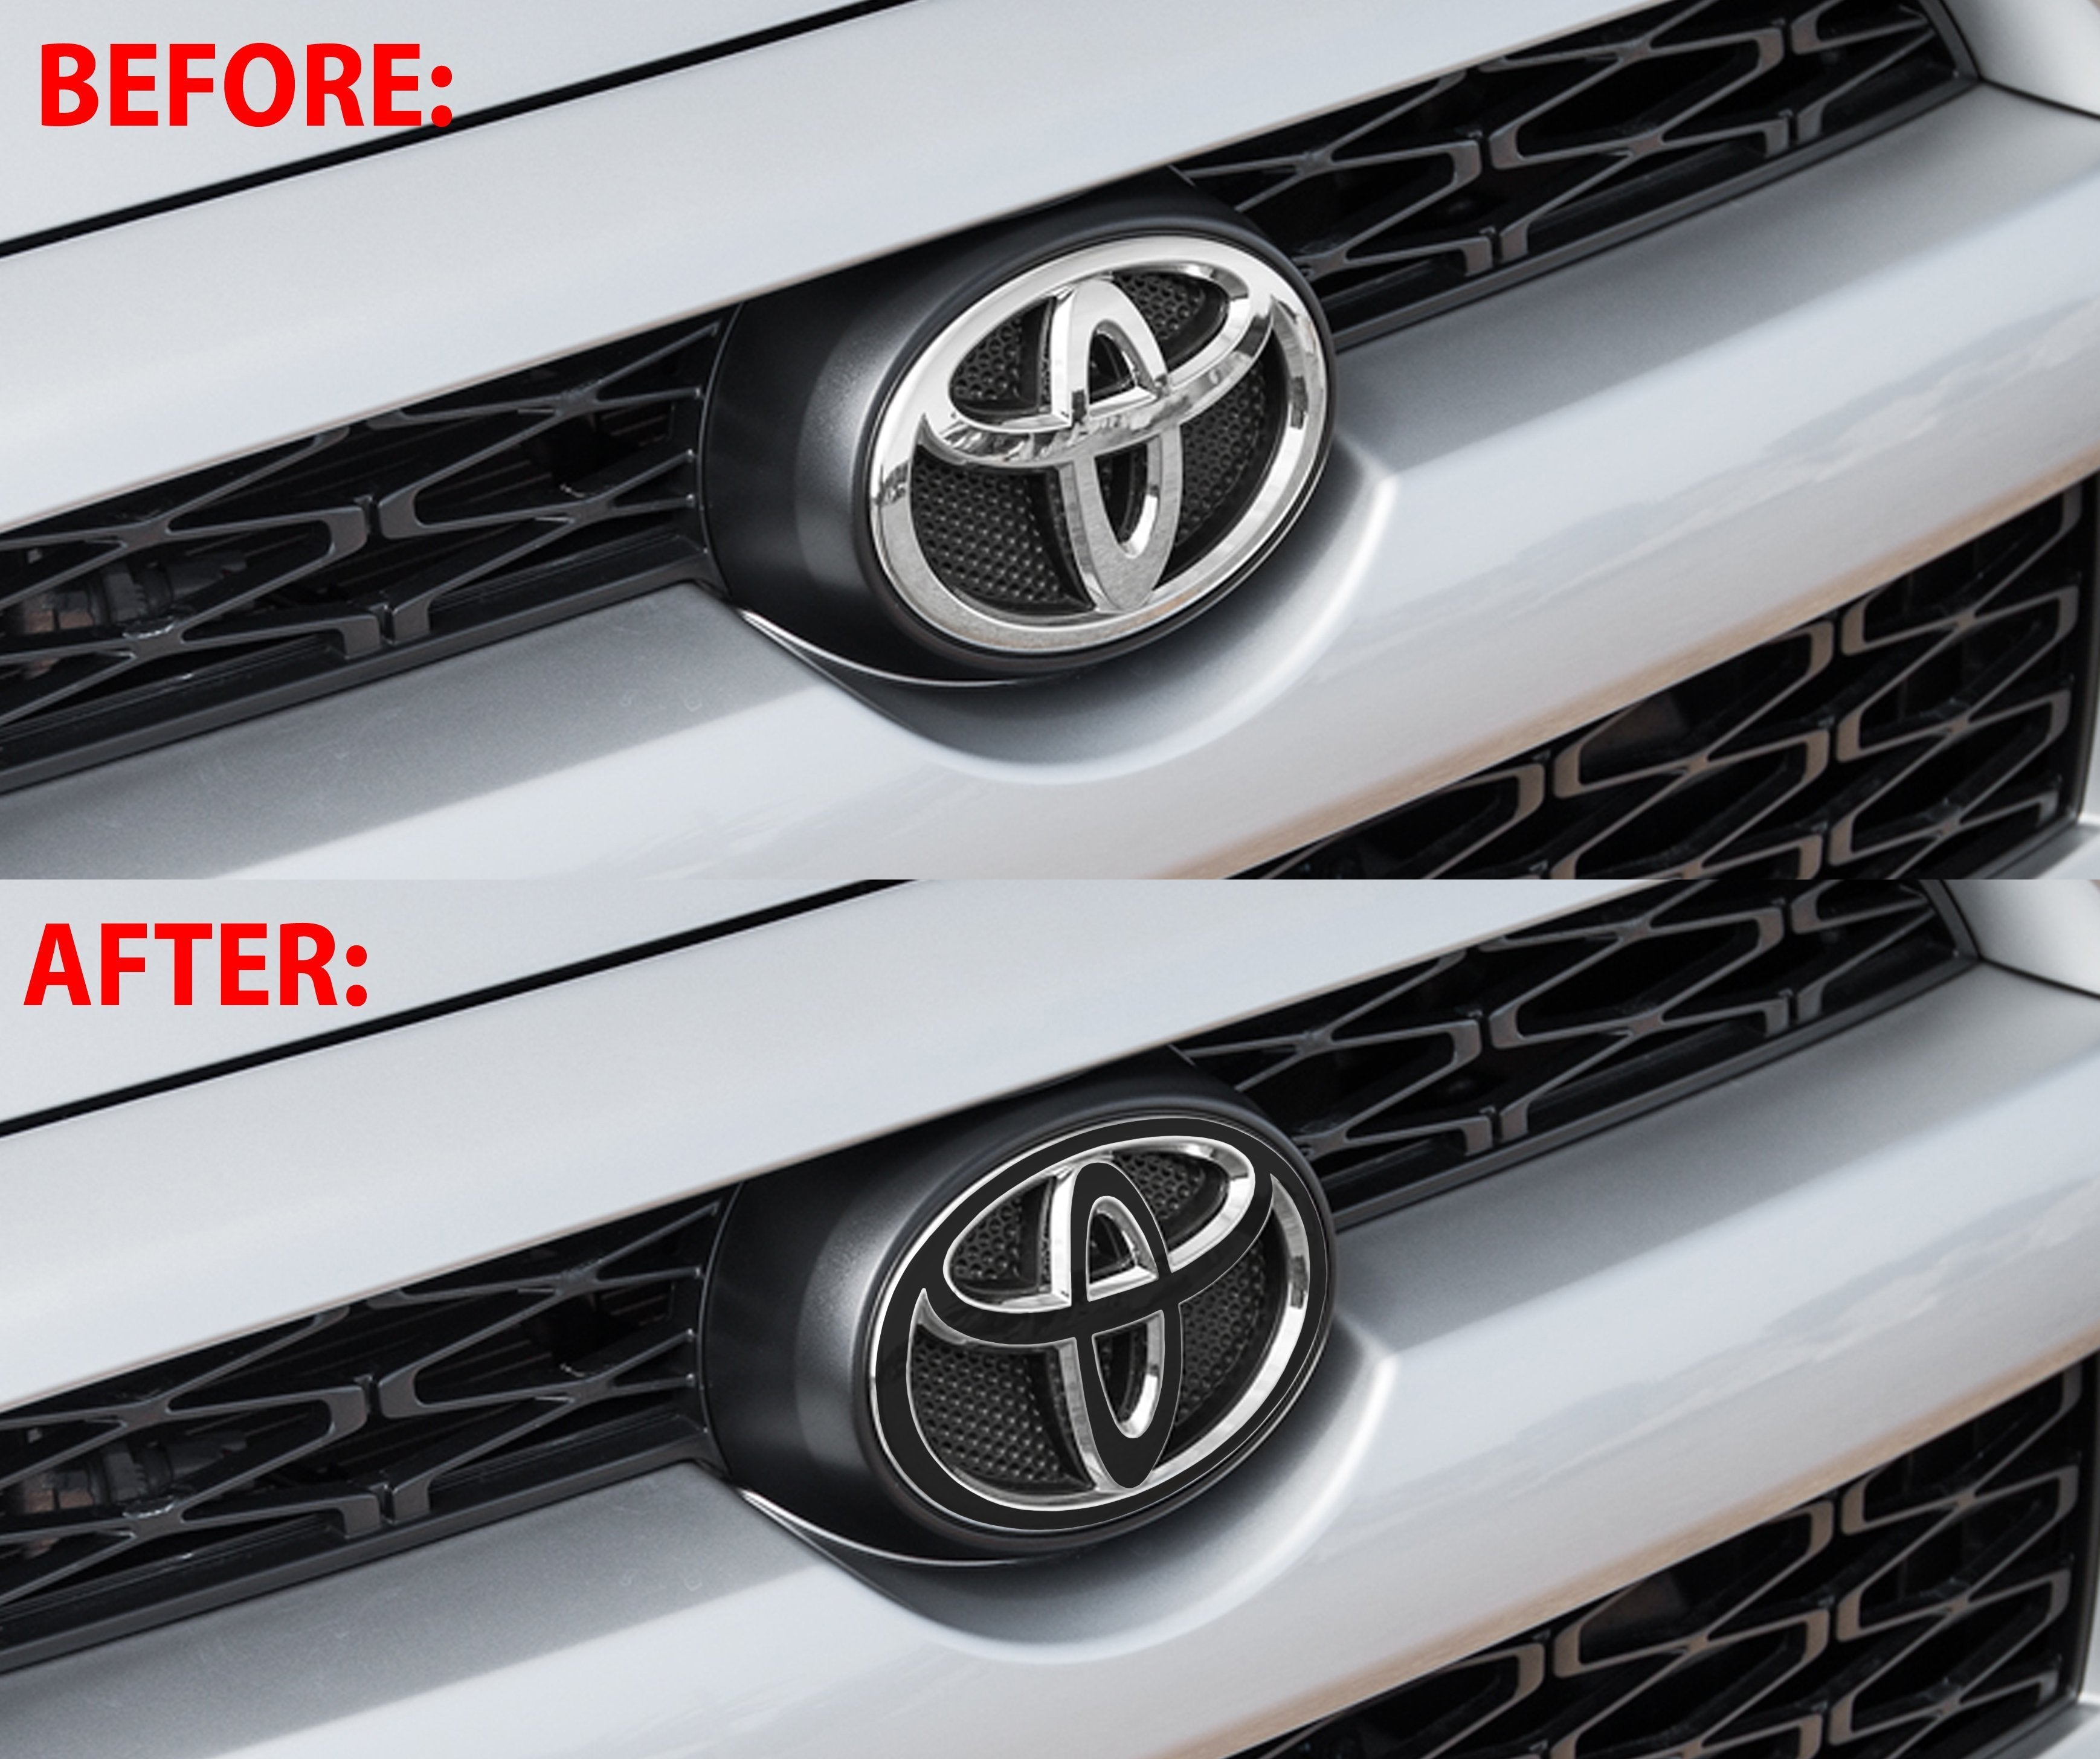 Premium Cast Vinyl Grille Logo Inlay Decals for 2010-2020 4Runner - TVD Vinyl Decals